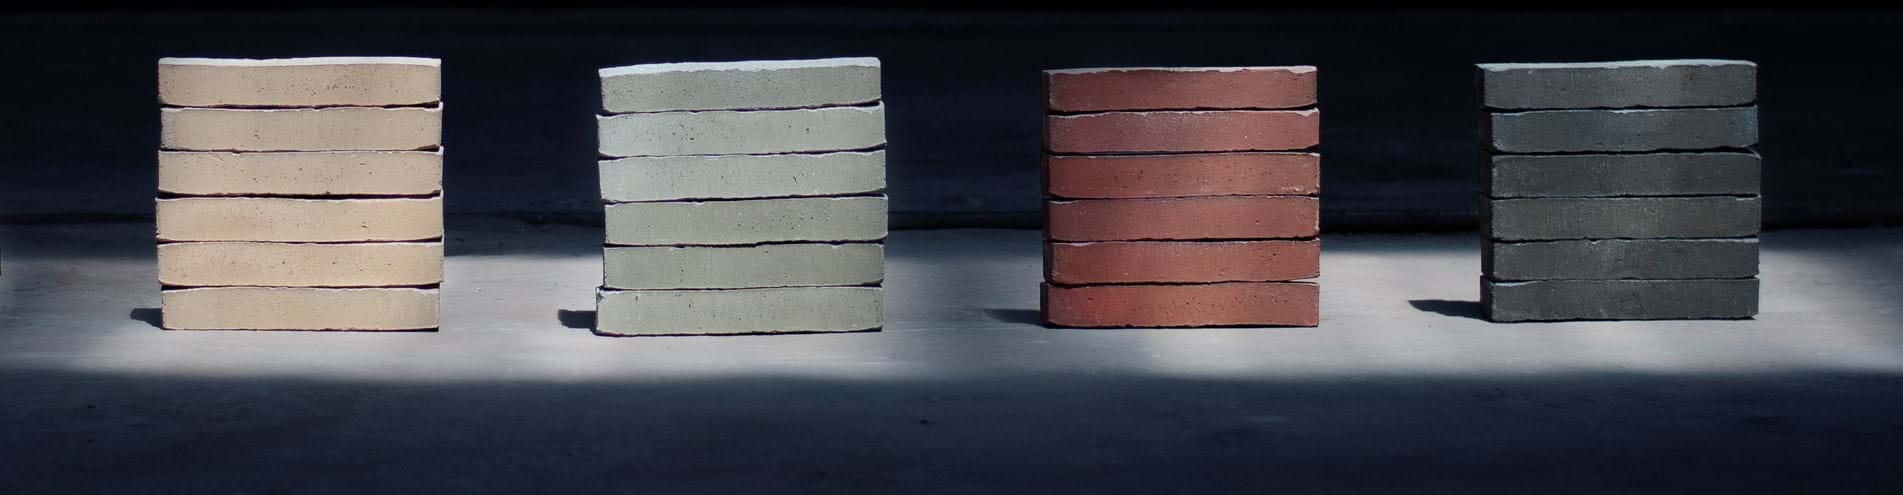 Four brand new facing bricks combine pure aesthetics with the ecological Brick7 format